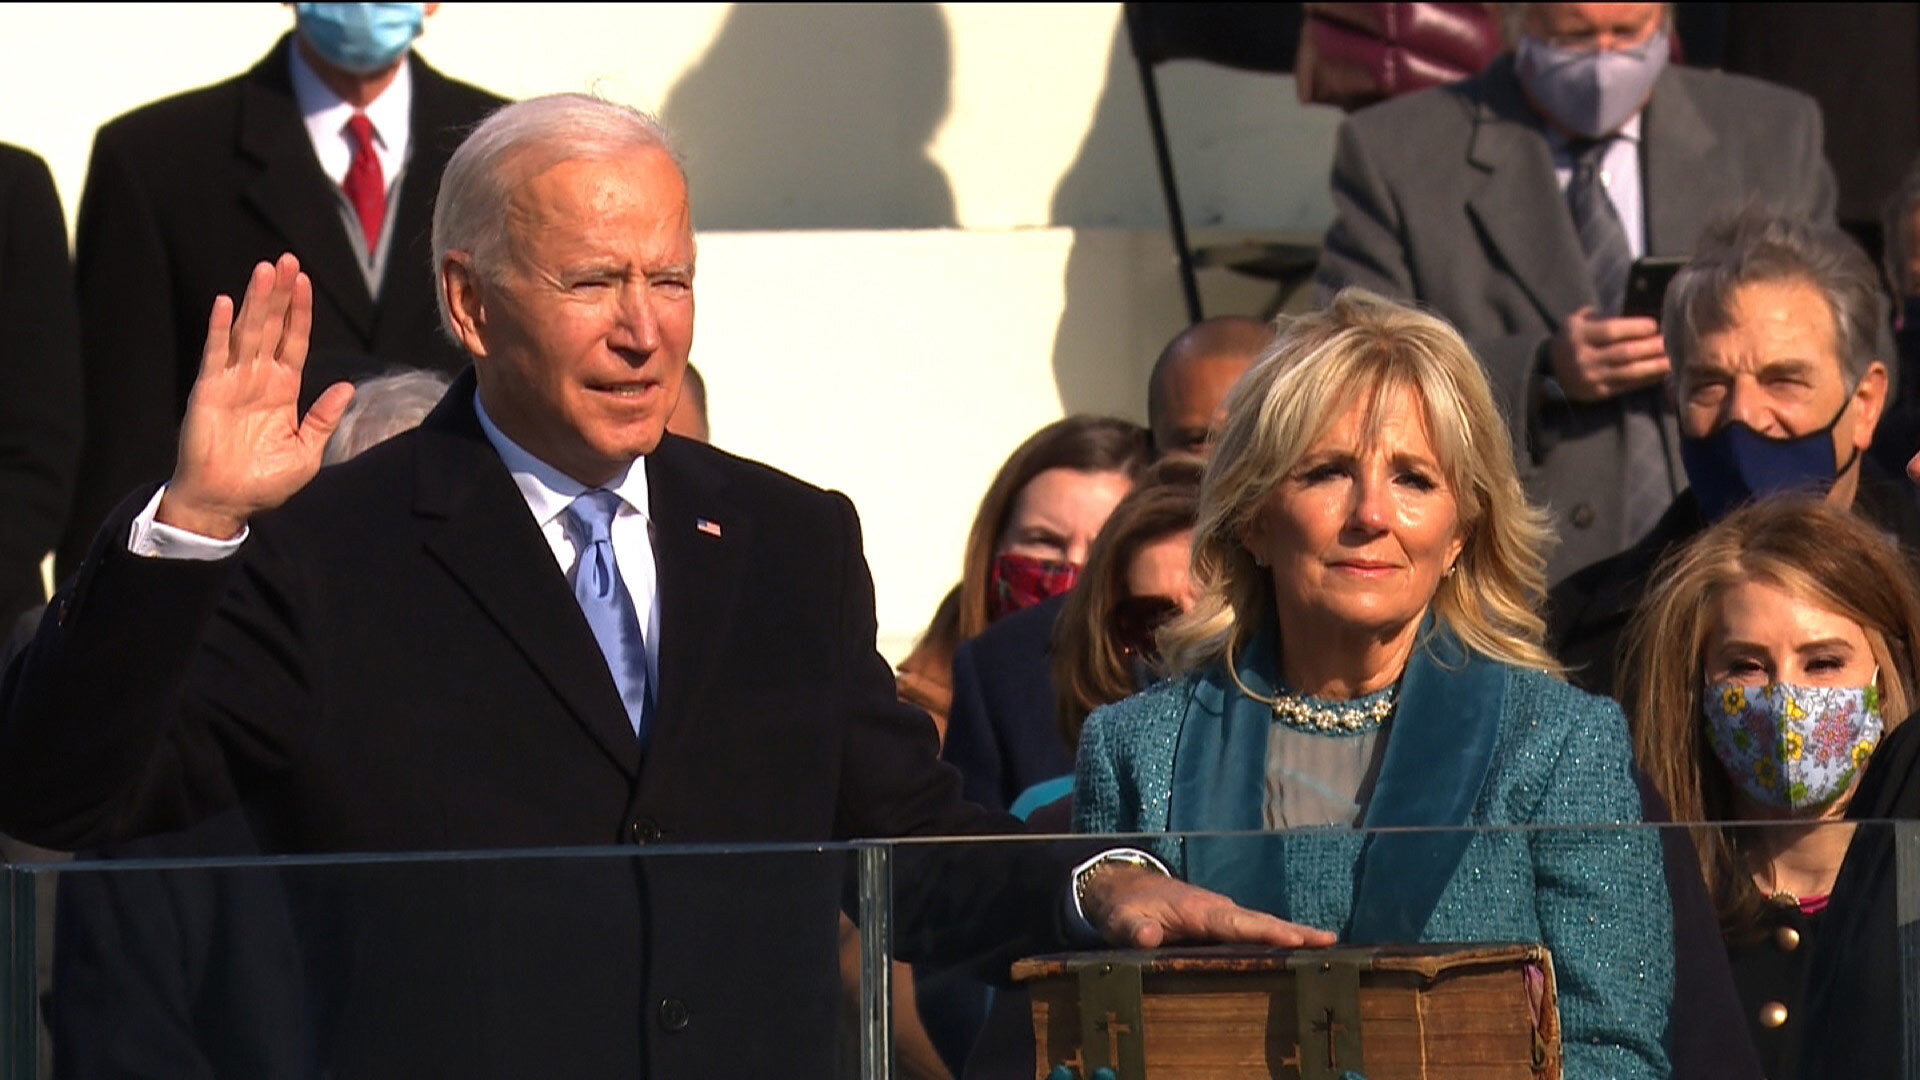 Joseph R. Biden Jr. has been sworn in as America's 46th president 0d7b8024-7a6a-423f-bbe5-35a9387d96bf